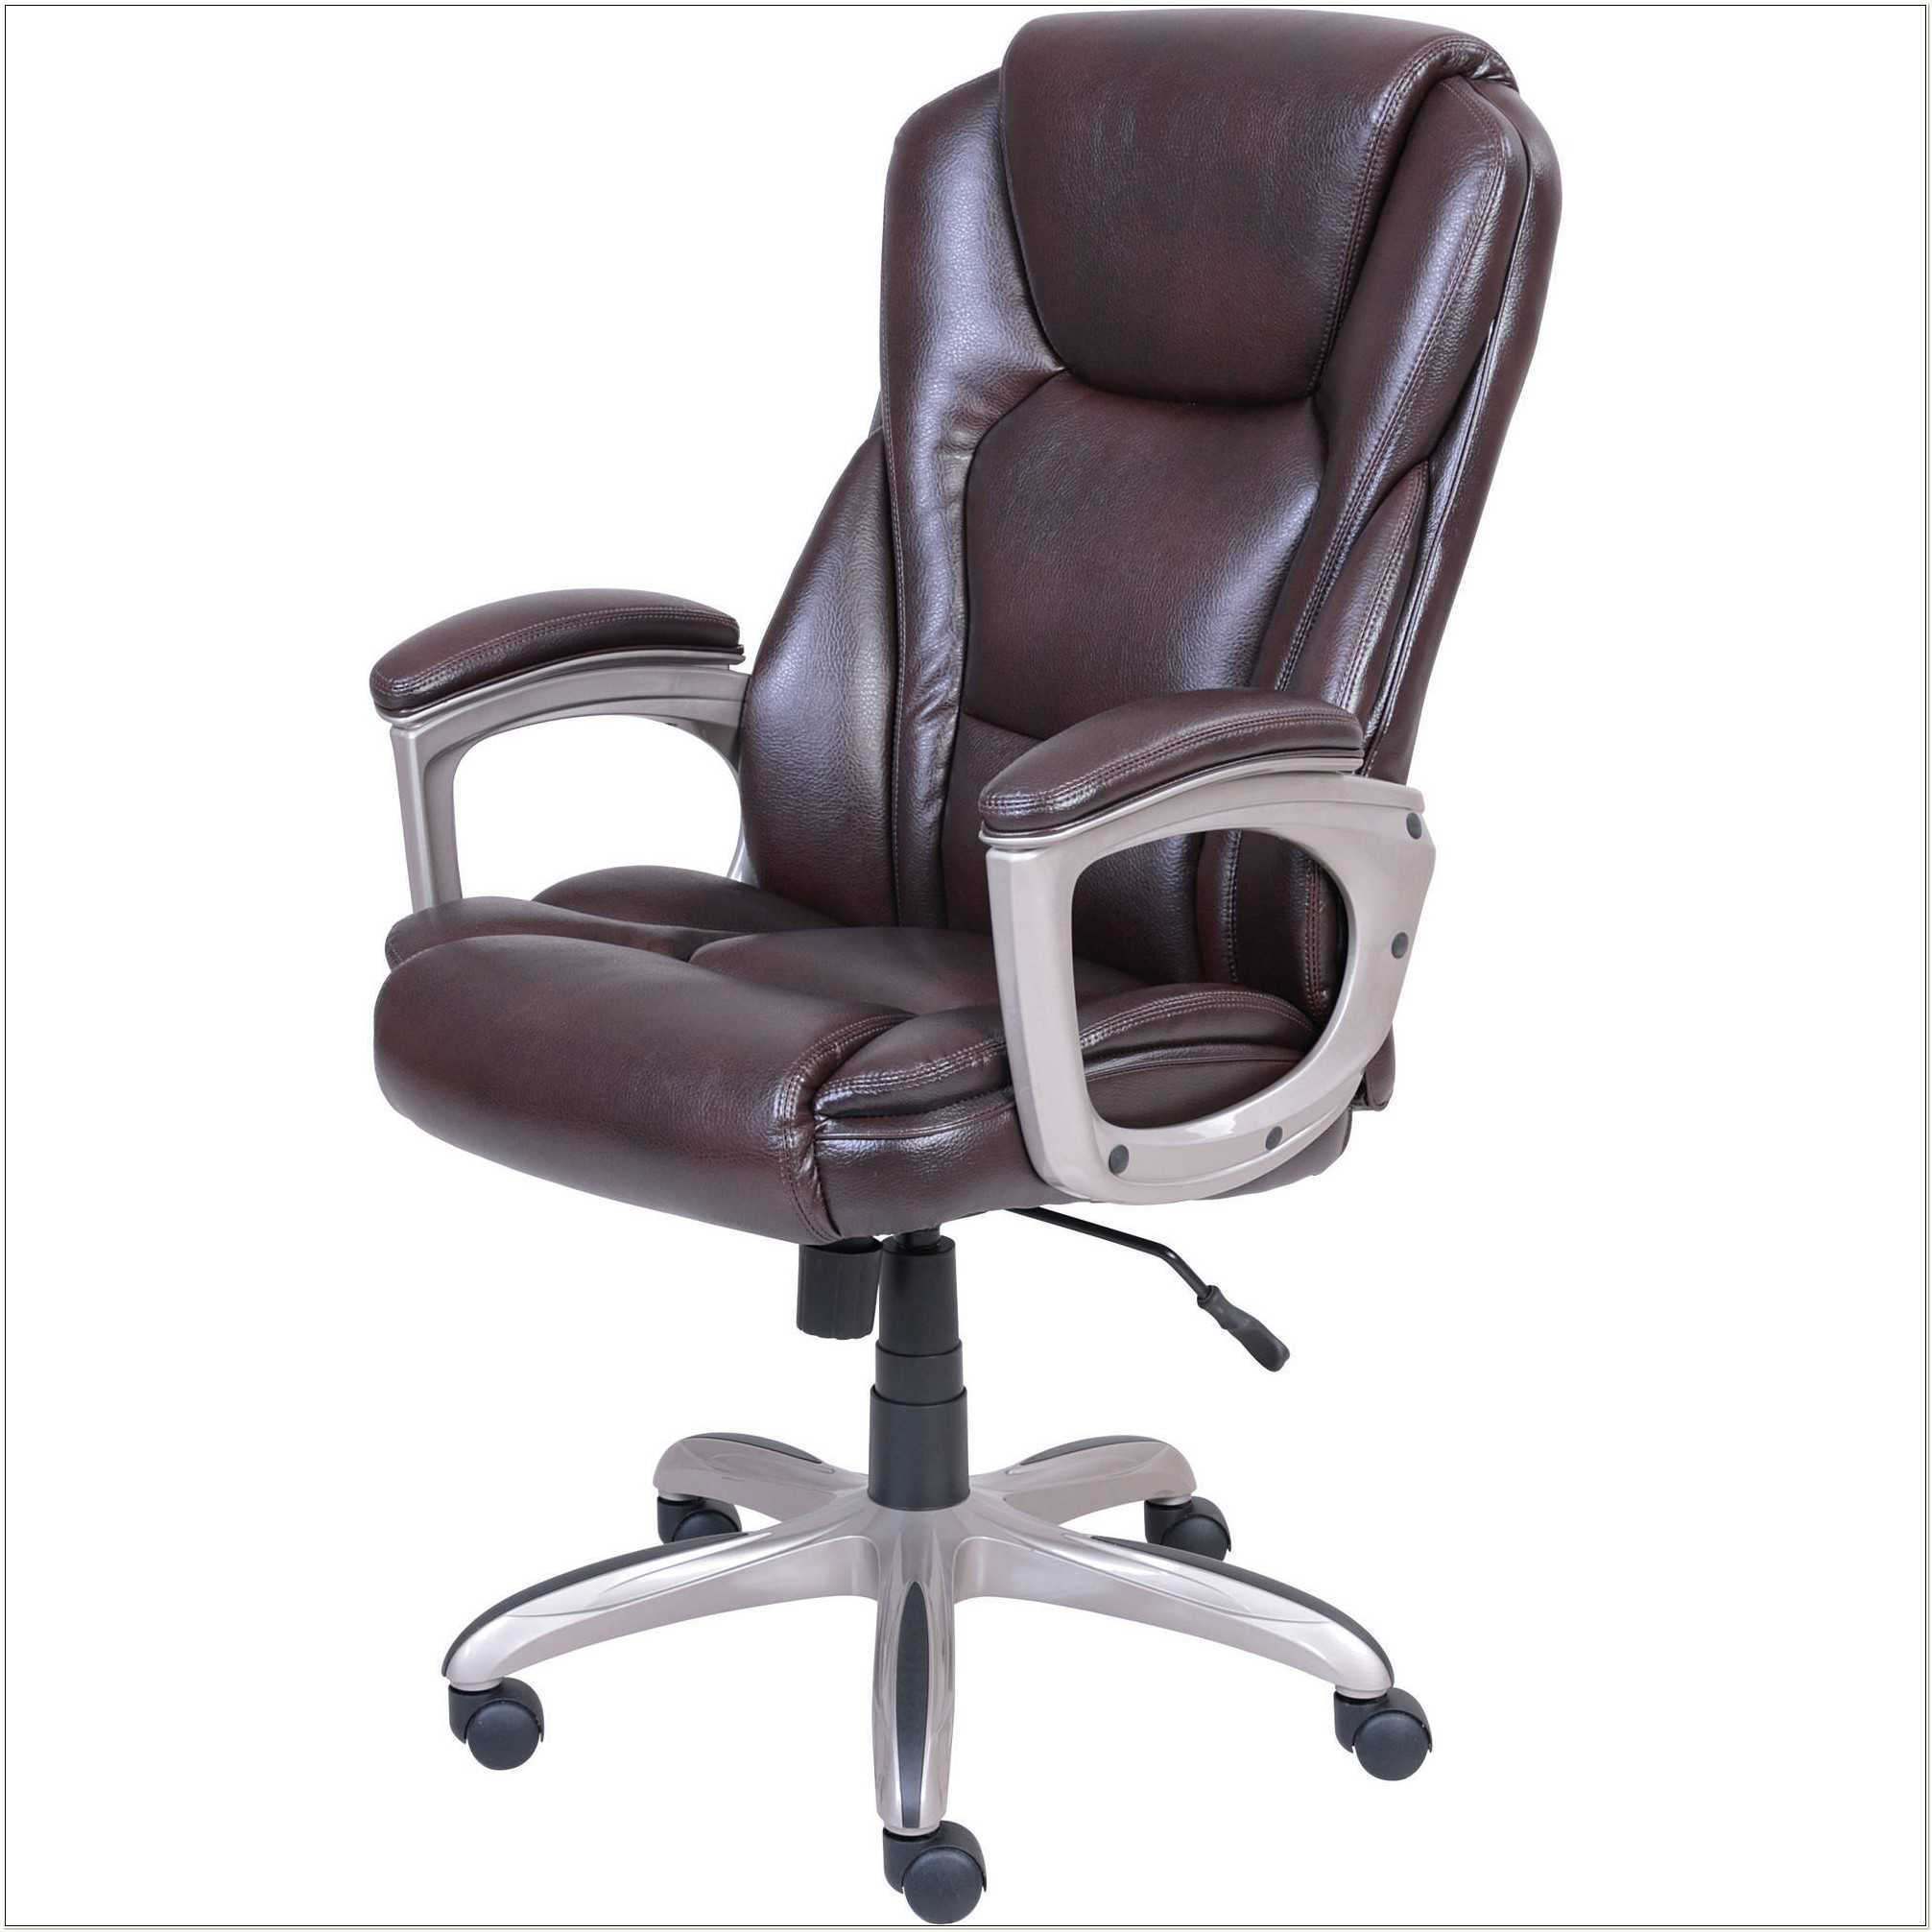 Serta Bonded Leather Executive Chair Gray